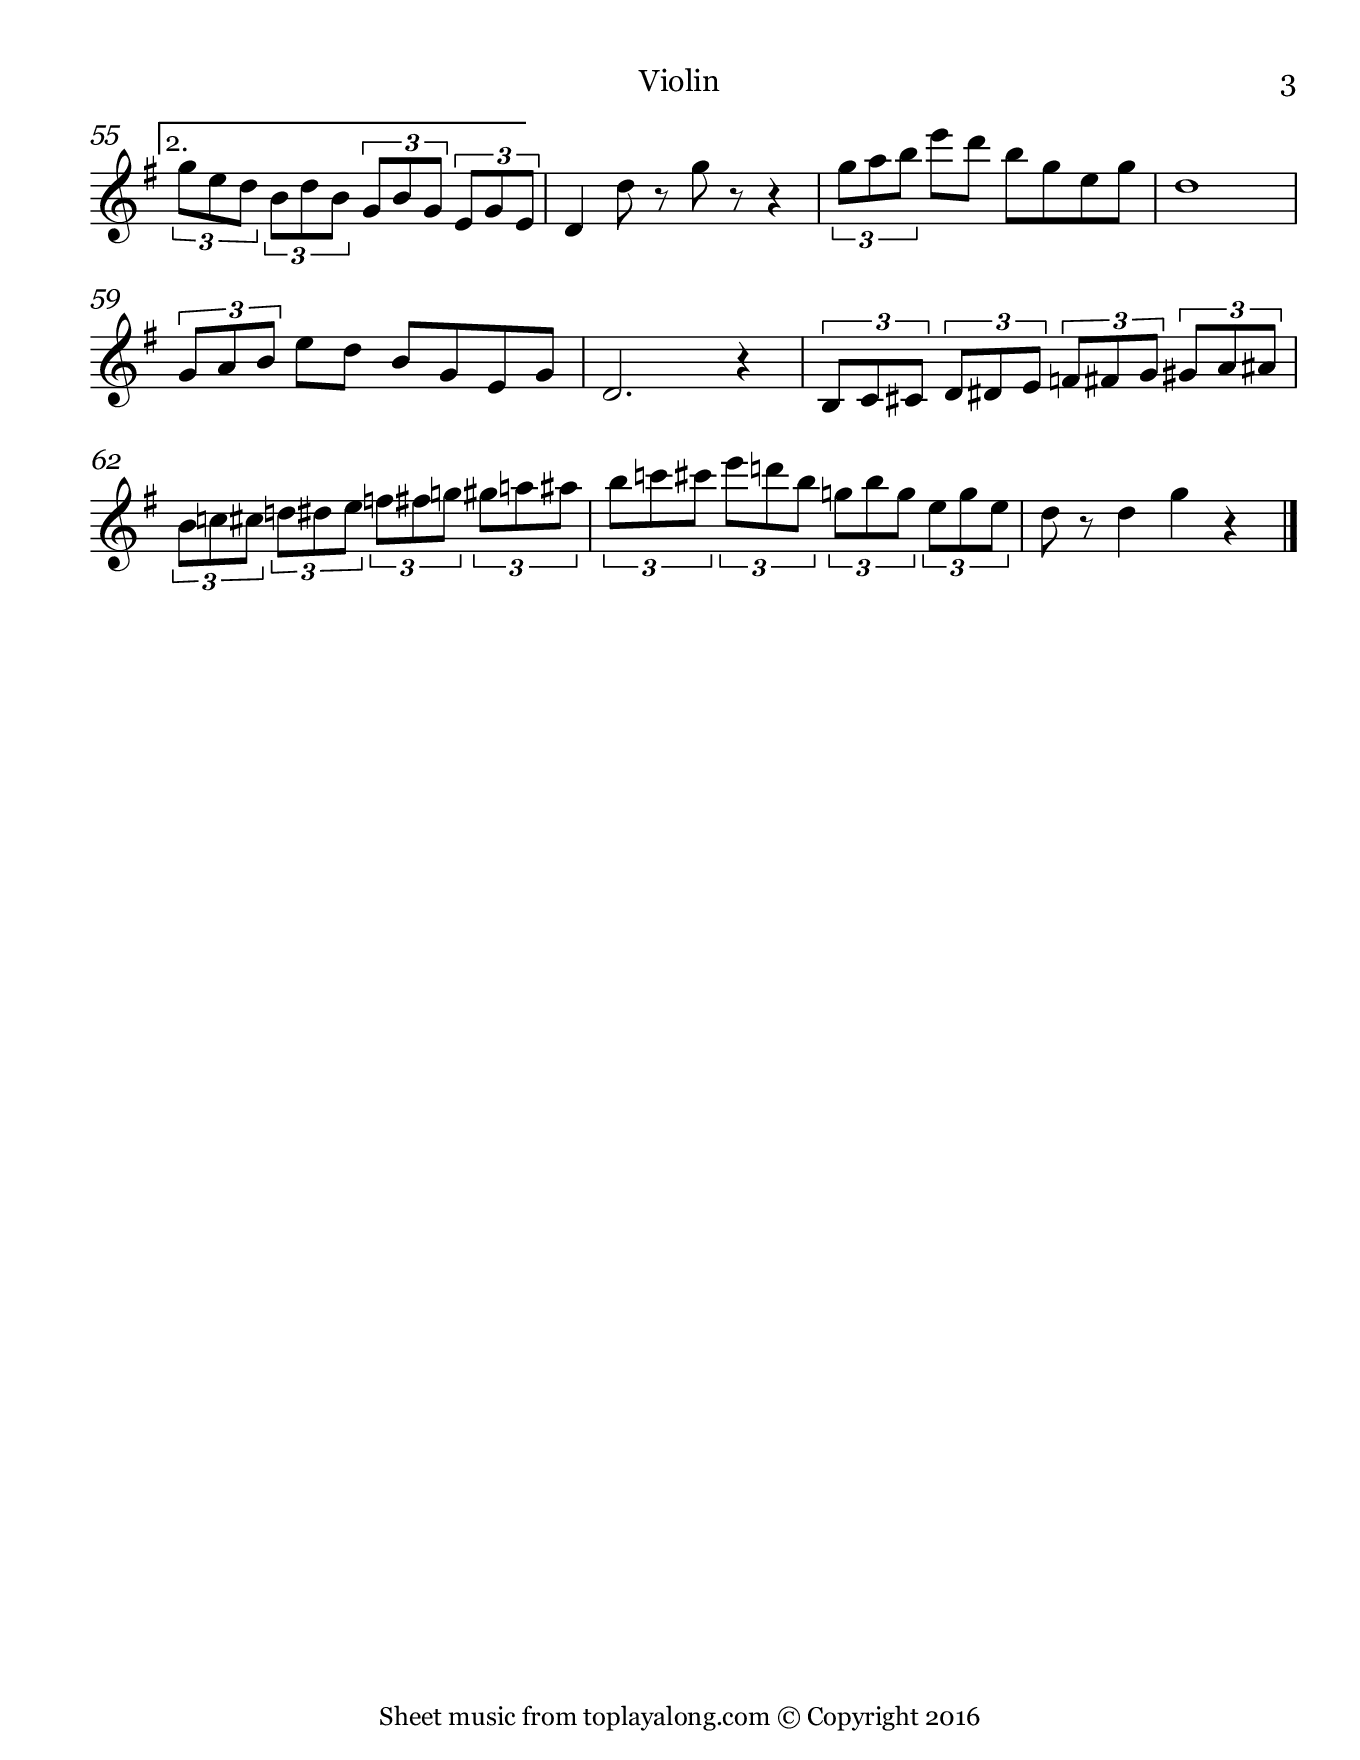 Nola by Arndt. Sheet music for Violin, page 3.